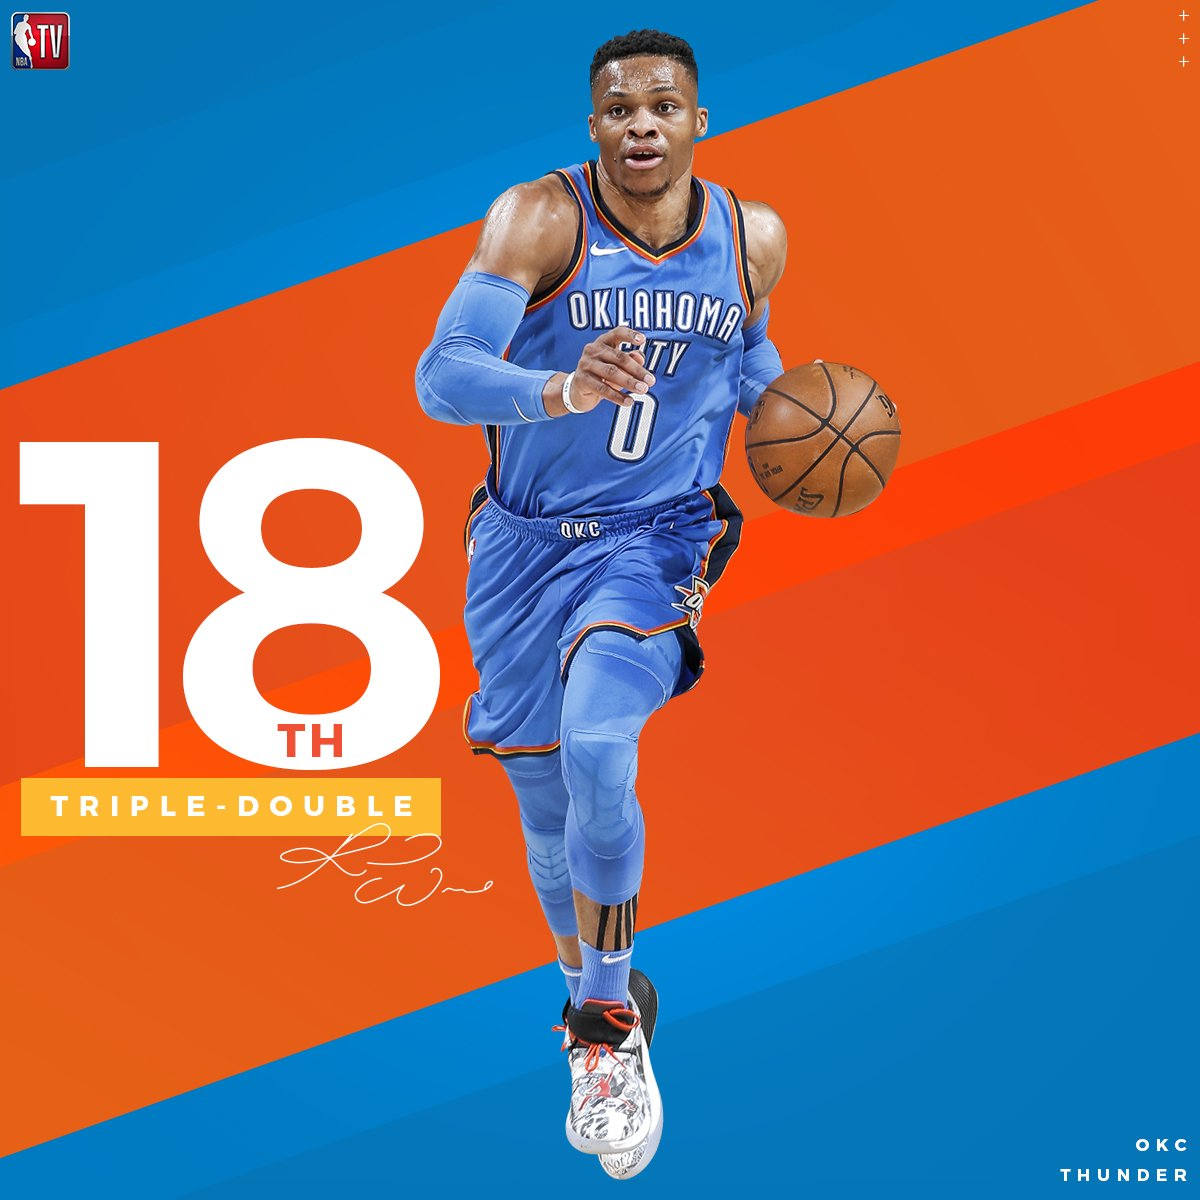 What a night for Russell Westbrook!   ⚡️ Hits game-winner at the buzzer ⚡️ Grabs 18th triple-double of the season